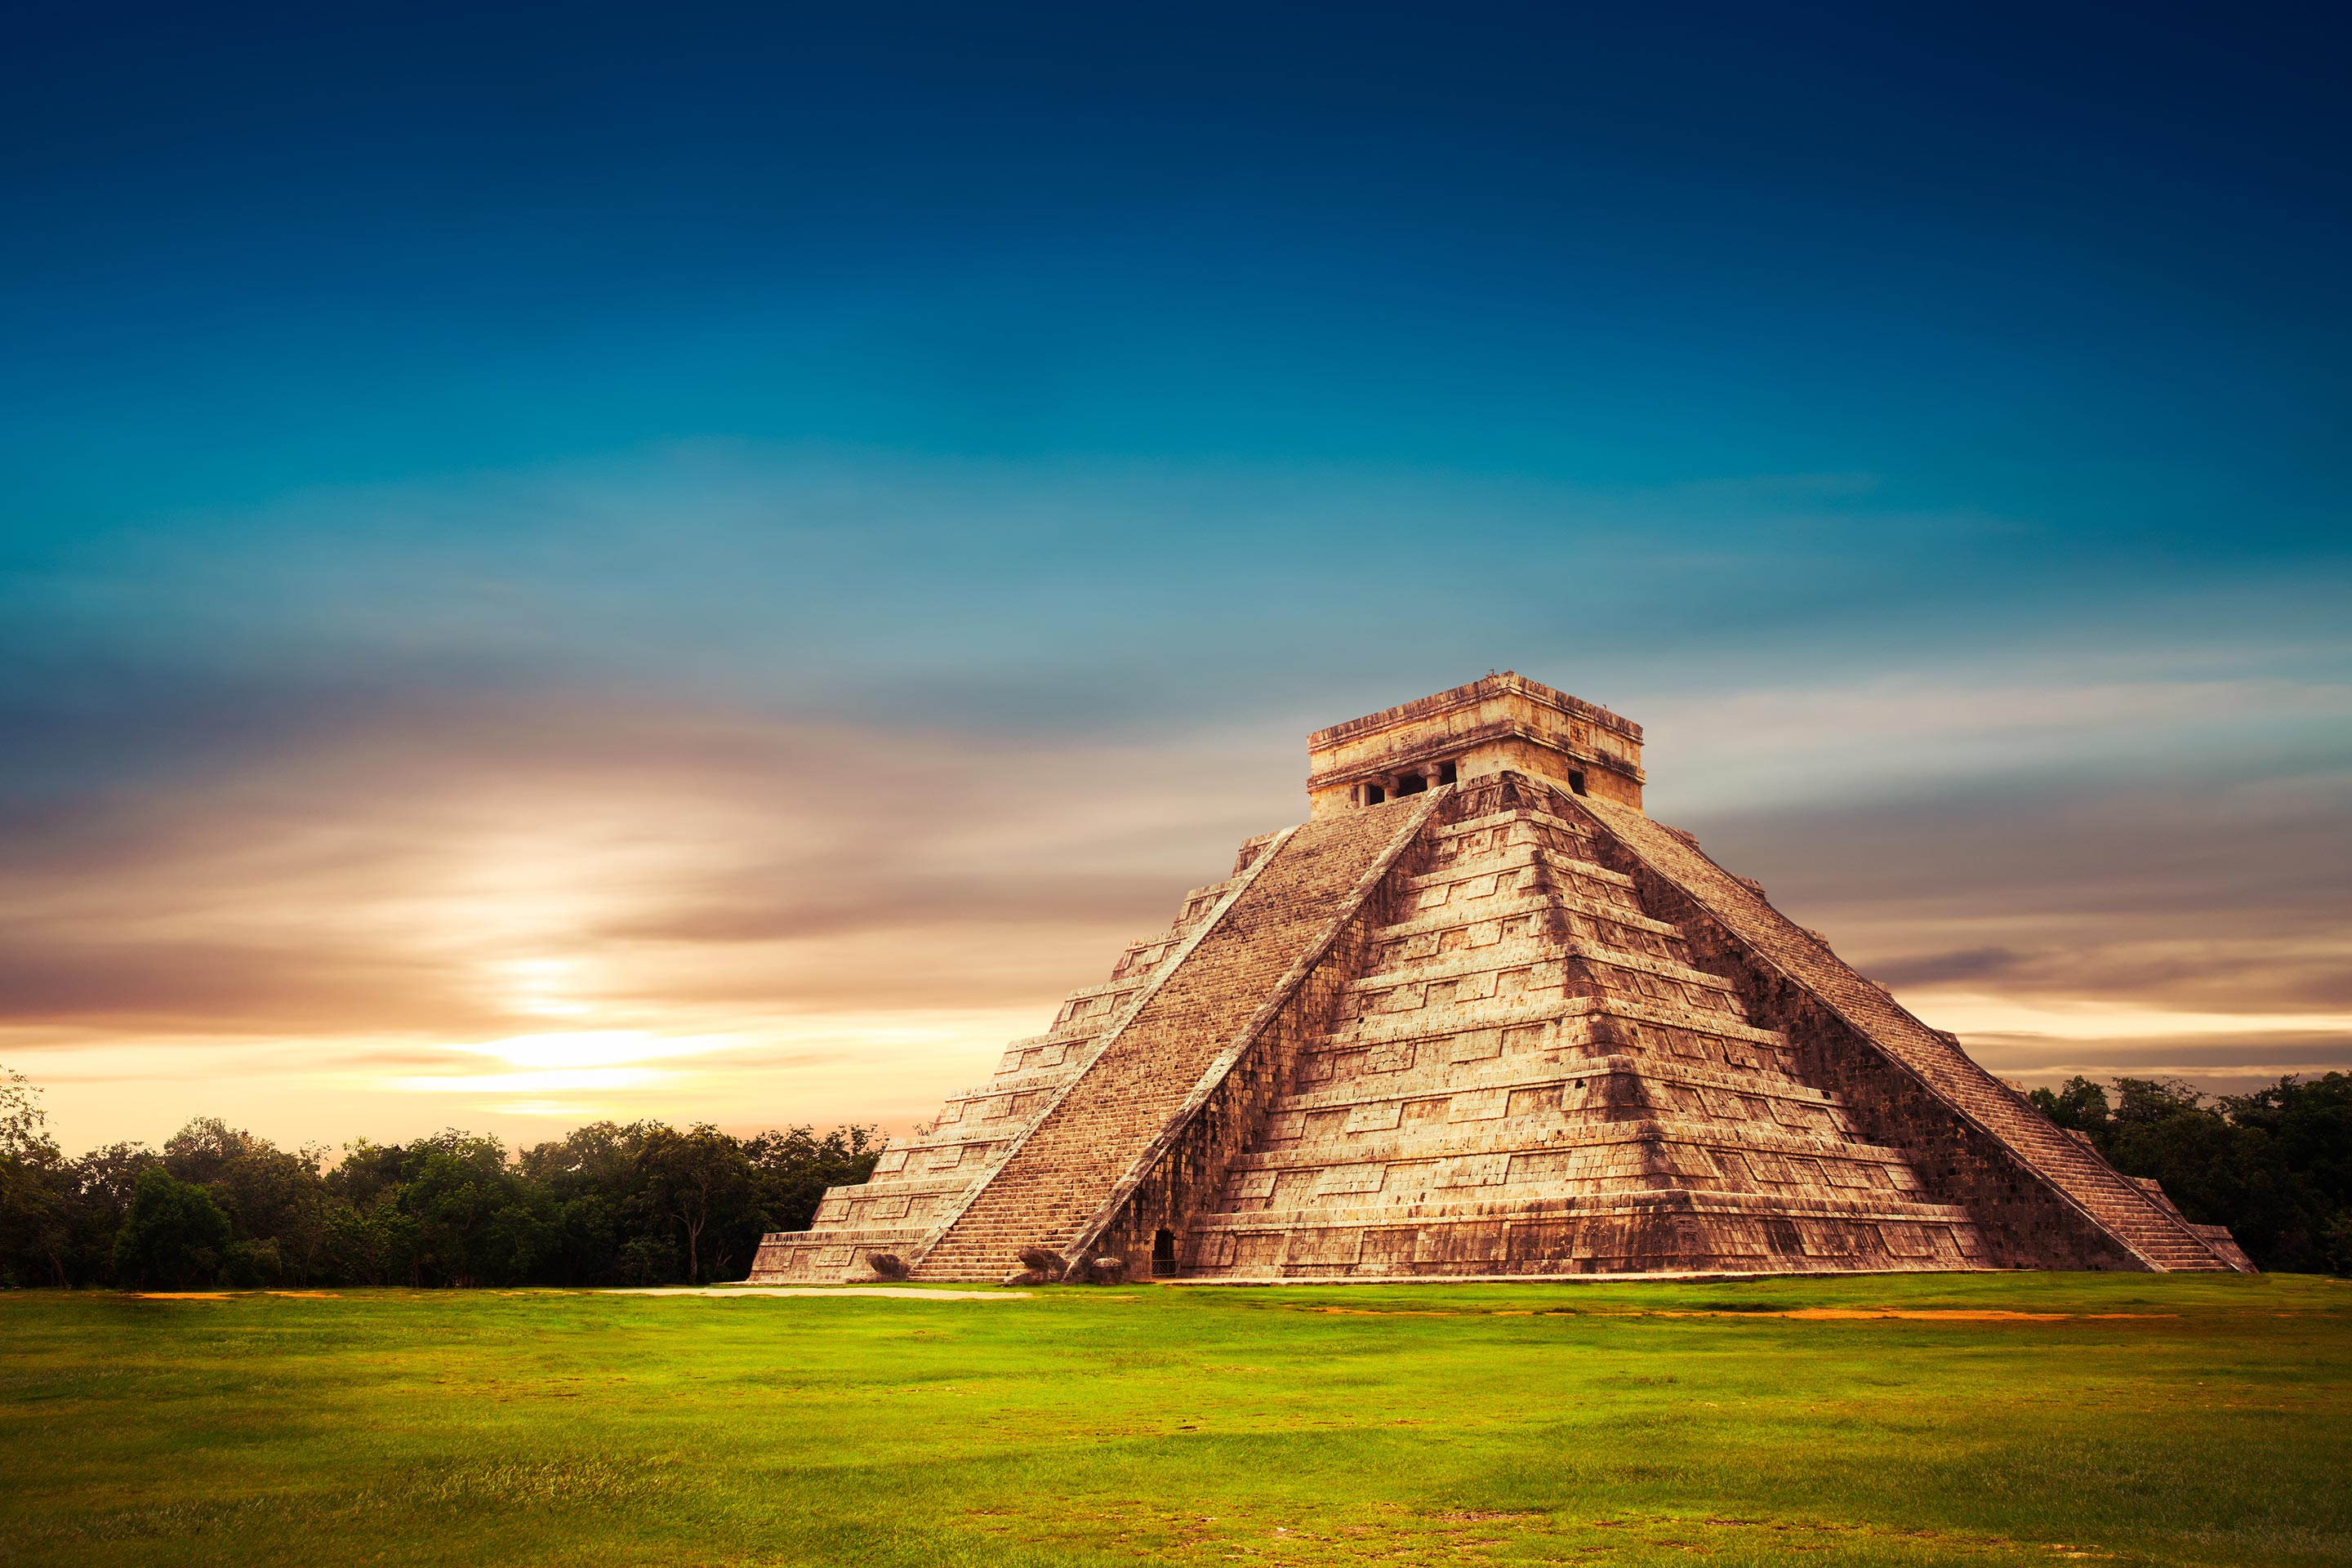 Pyramid, Temple of Kukulkan, Chichen Itza, Yucatan, Mexico.